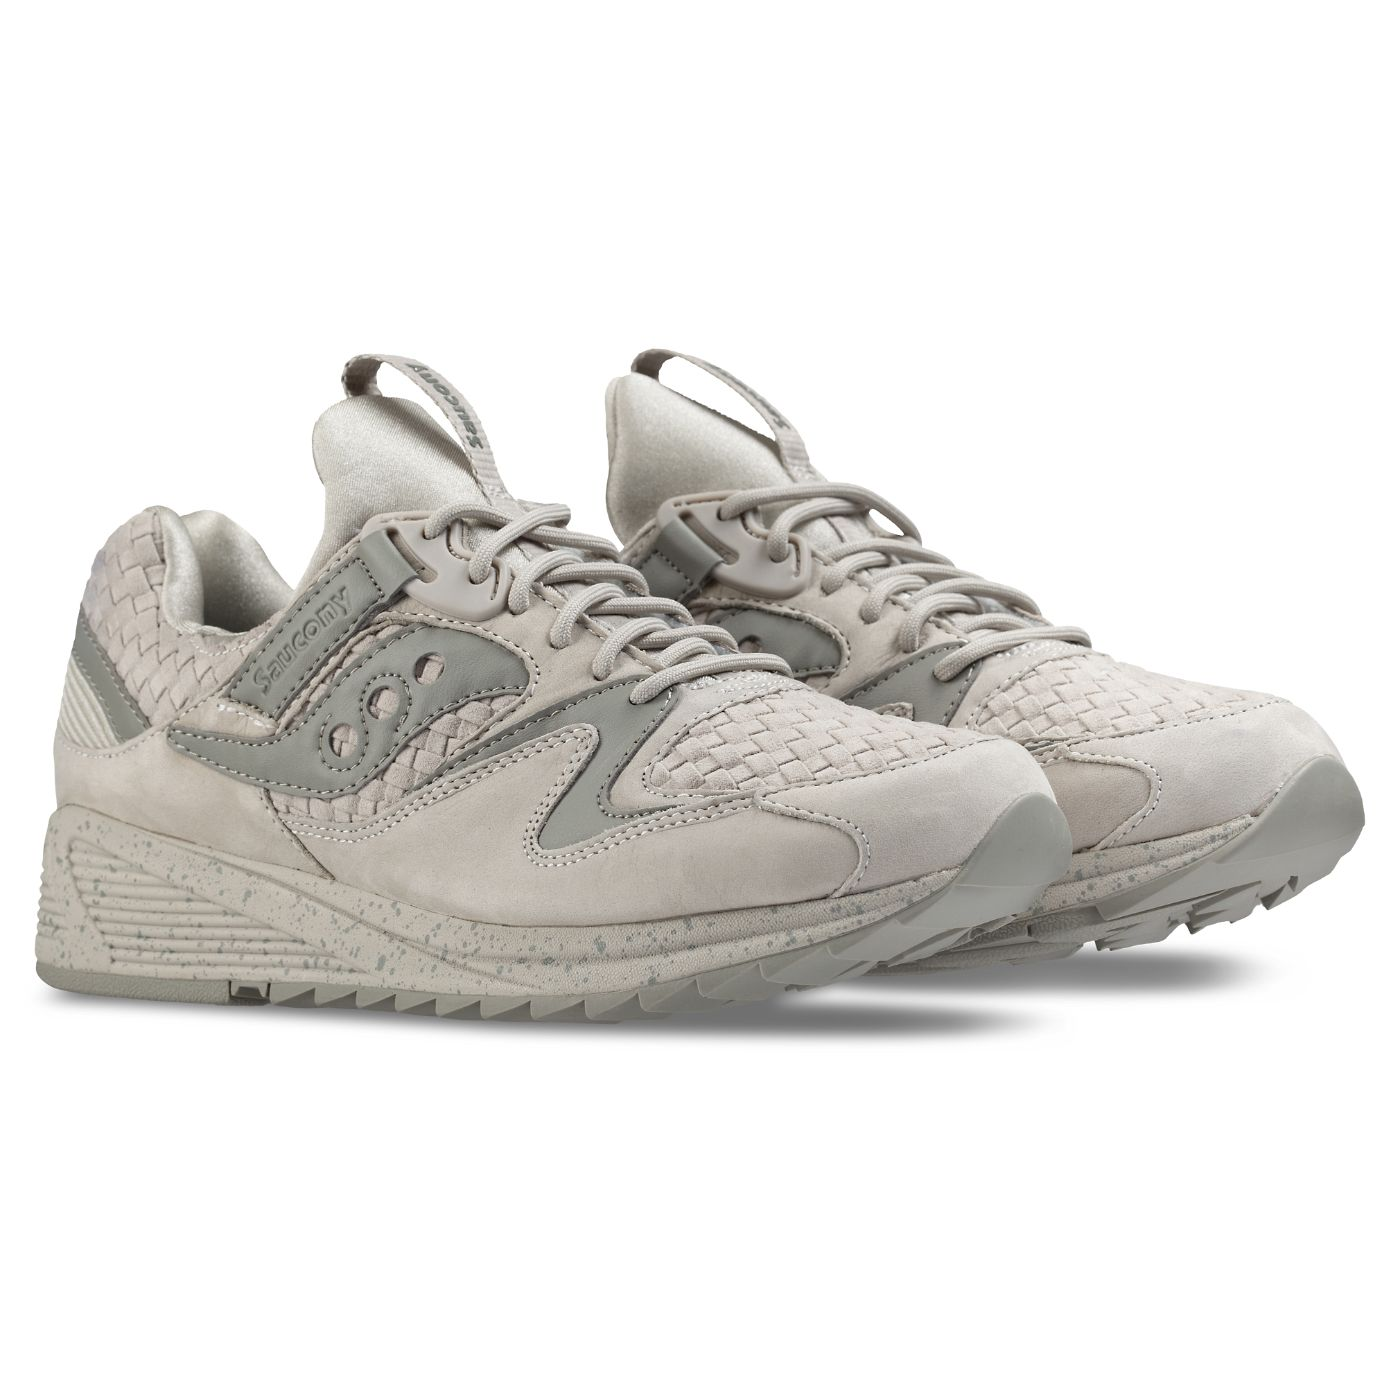 Saucony Sneakers Mens GRID 8500 Weave S70304-2 by Saucony